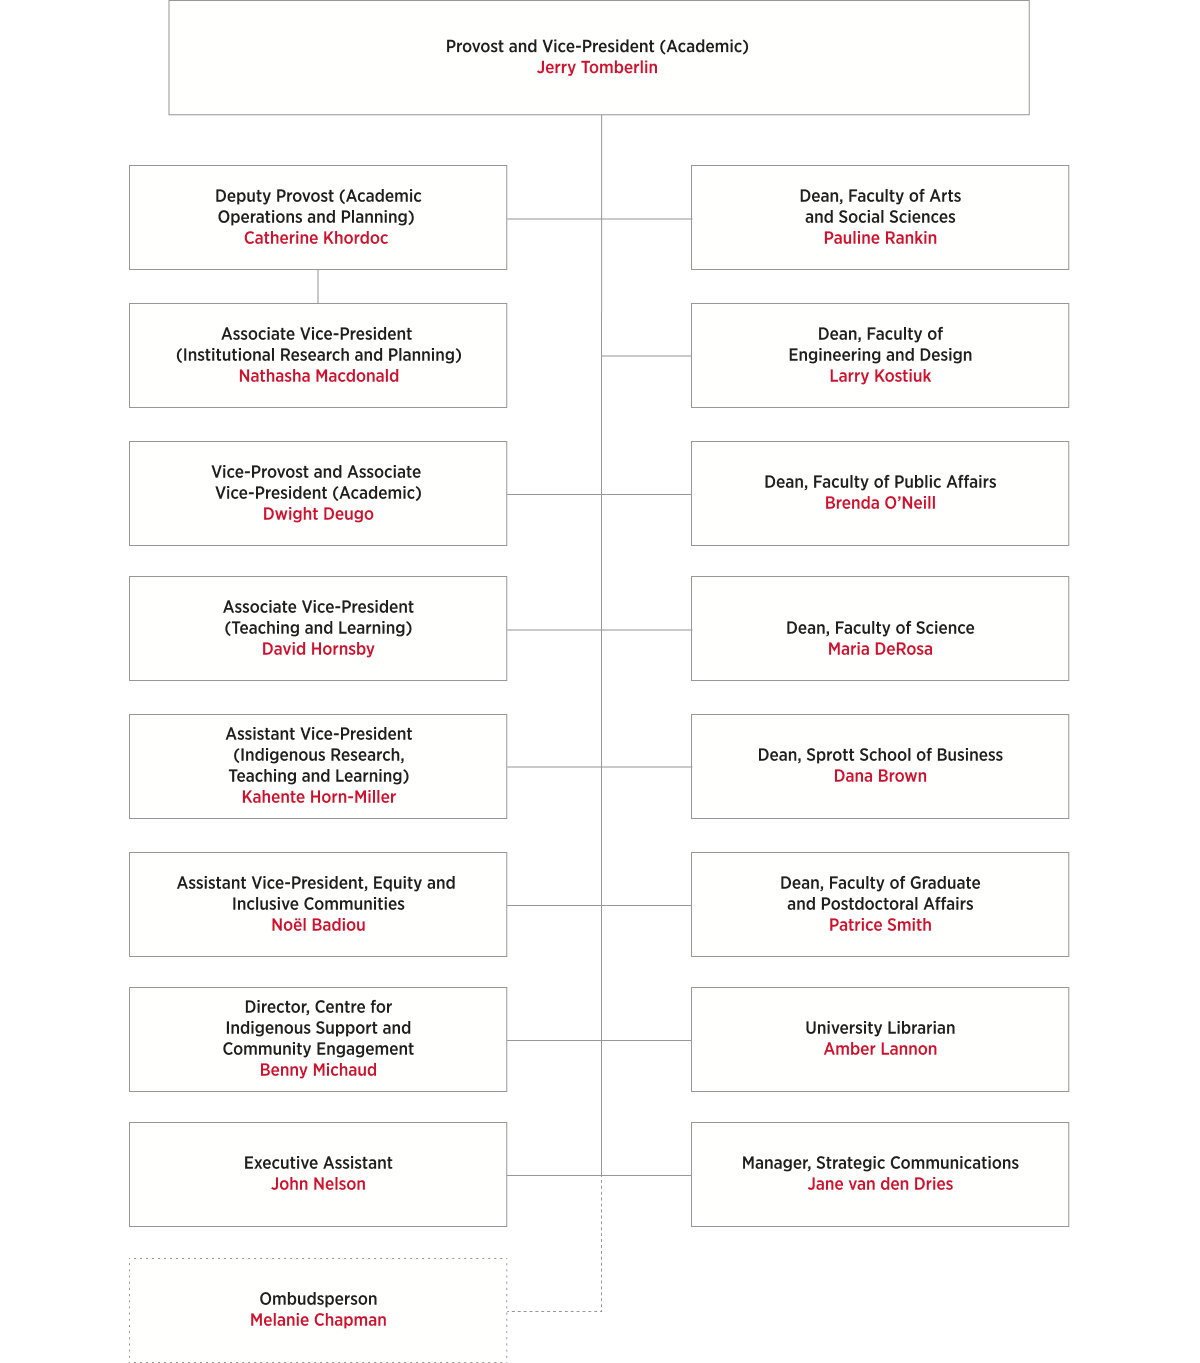 Provost and Vice-President (Academic) Organizational Chart